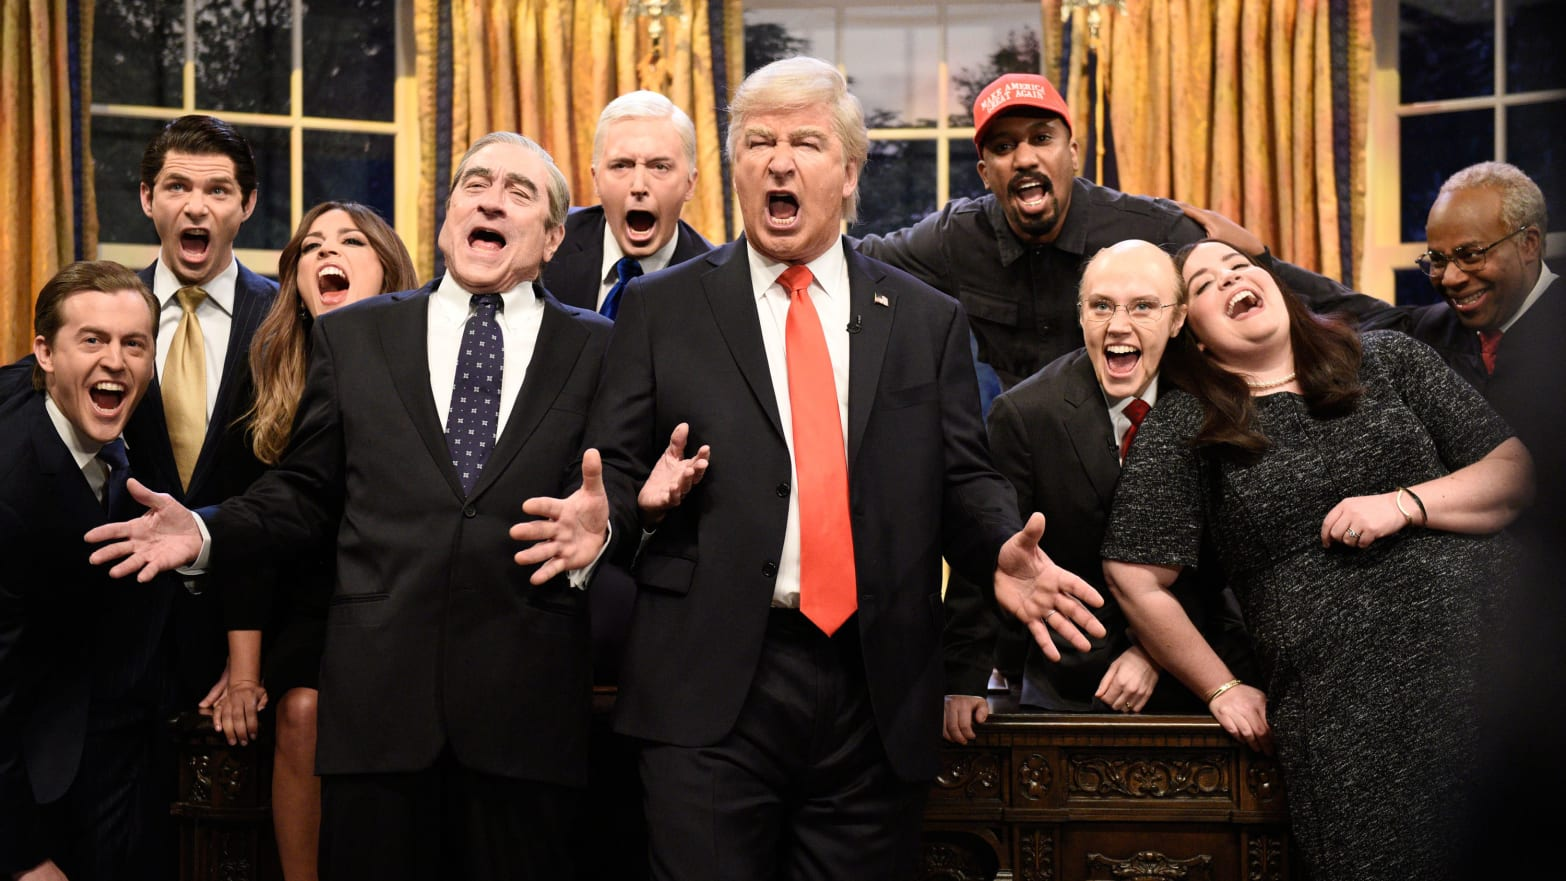 Make SNL Great Again and Get Rid of Alec Baldwin's Trump